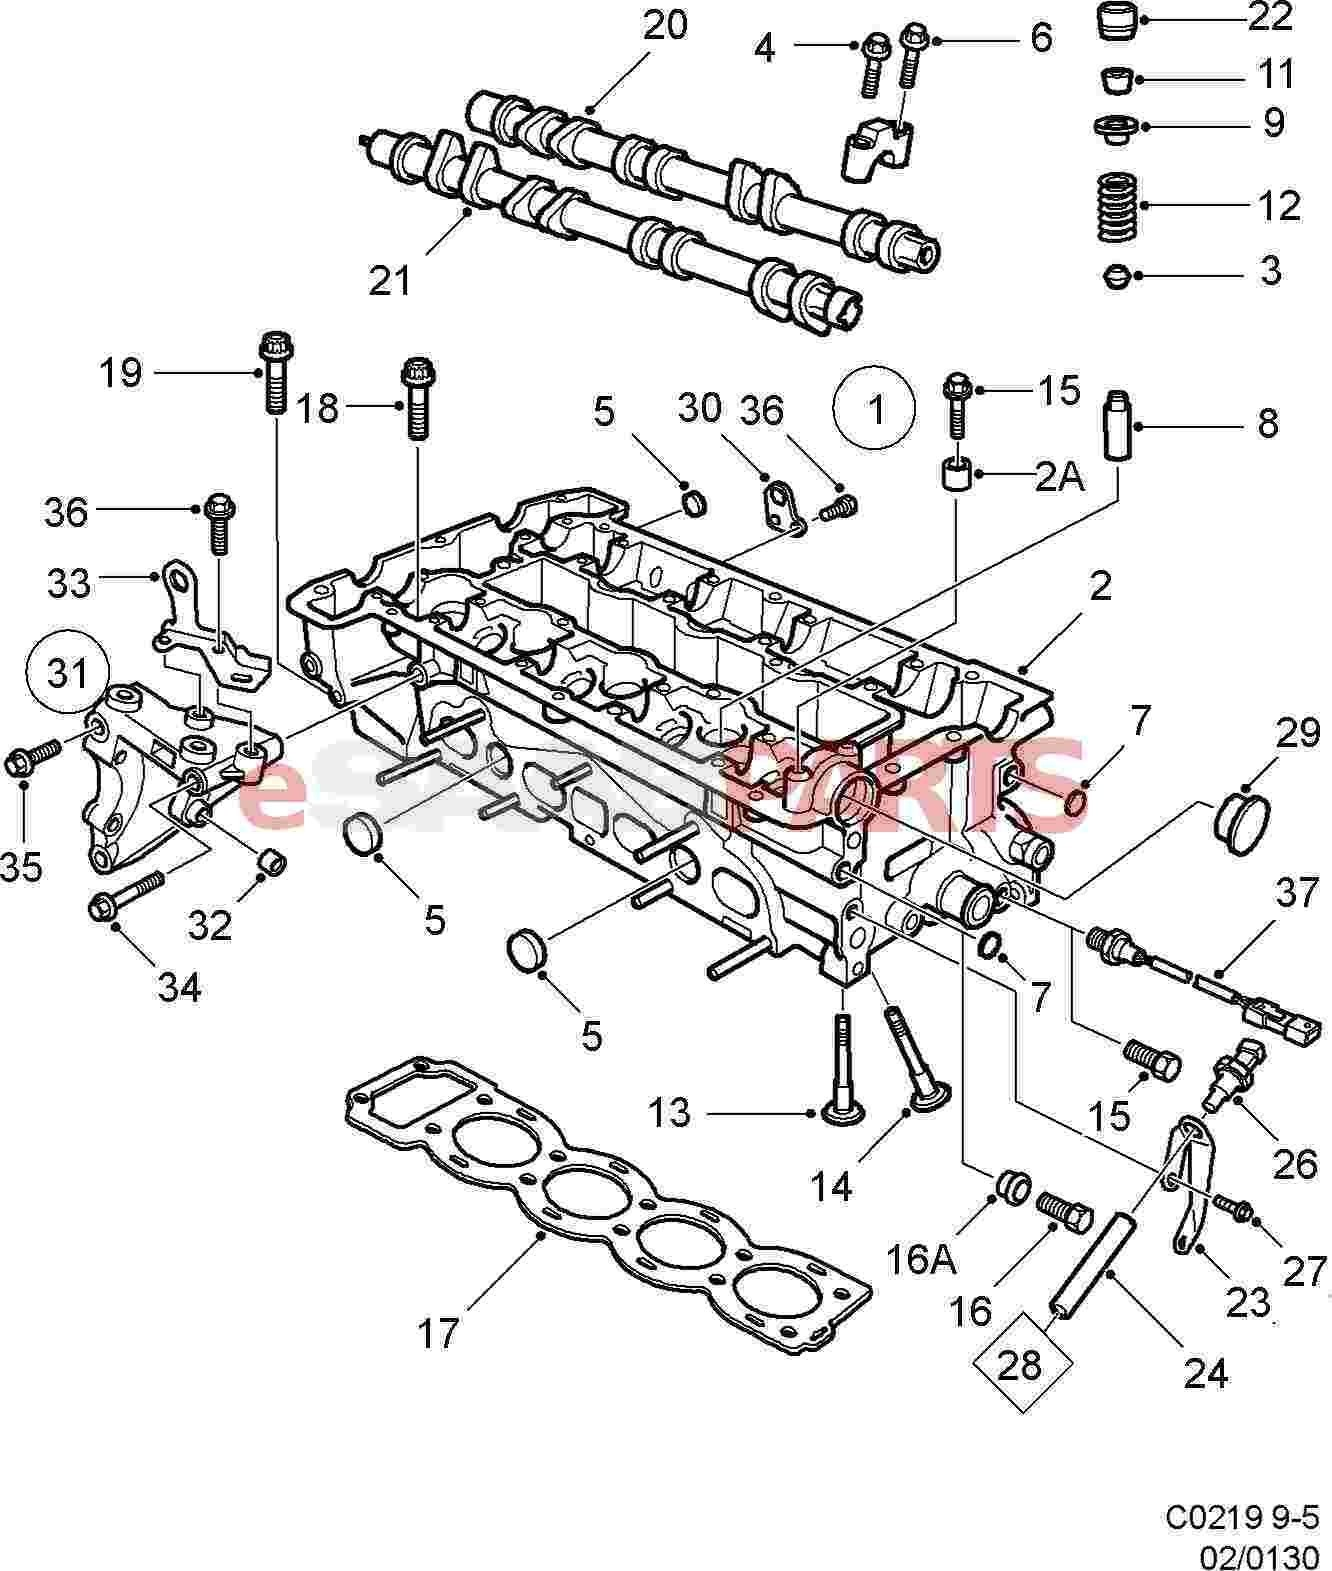 2000 Saab 9 5 Engine Parts Diagram Saab 9 5 Codes Wiring